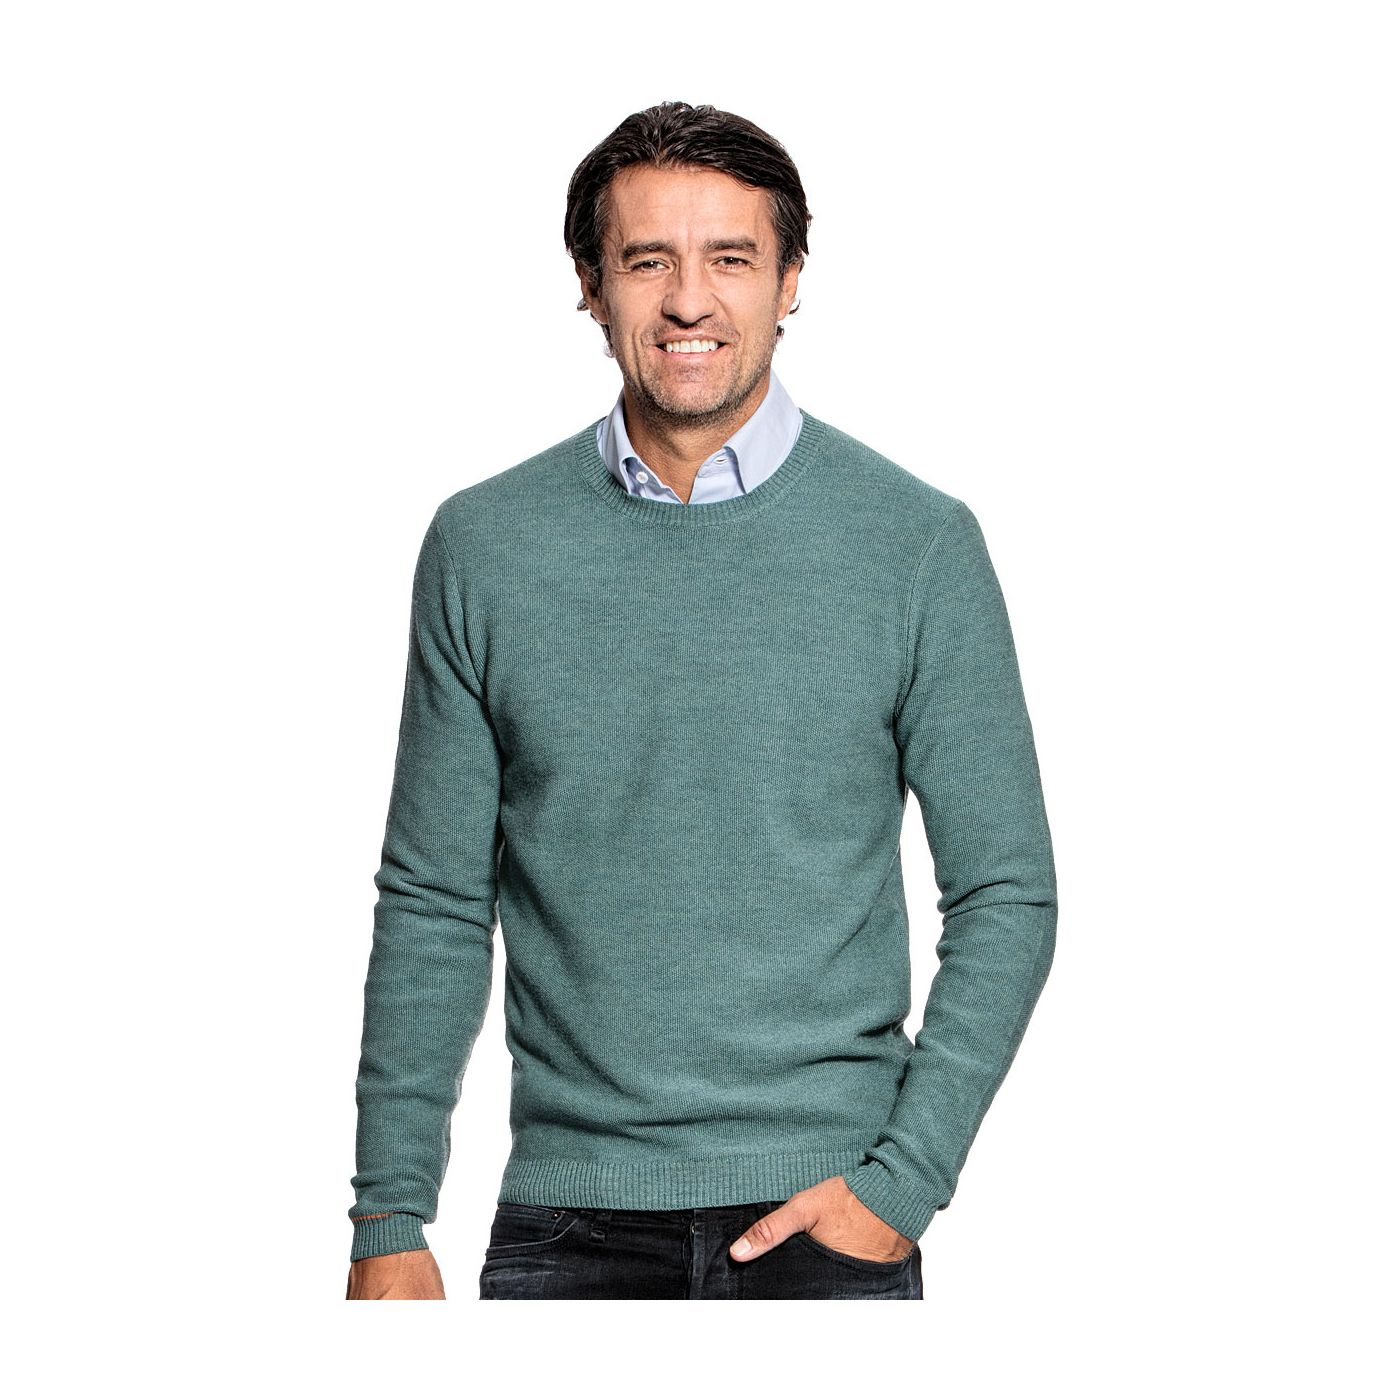 Honeycomb knit sweater for men made of Merino wool in Light green